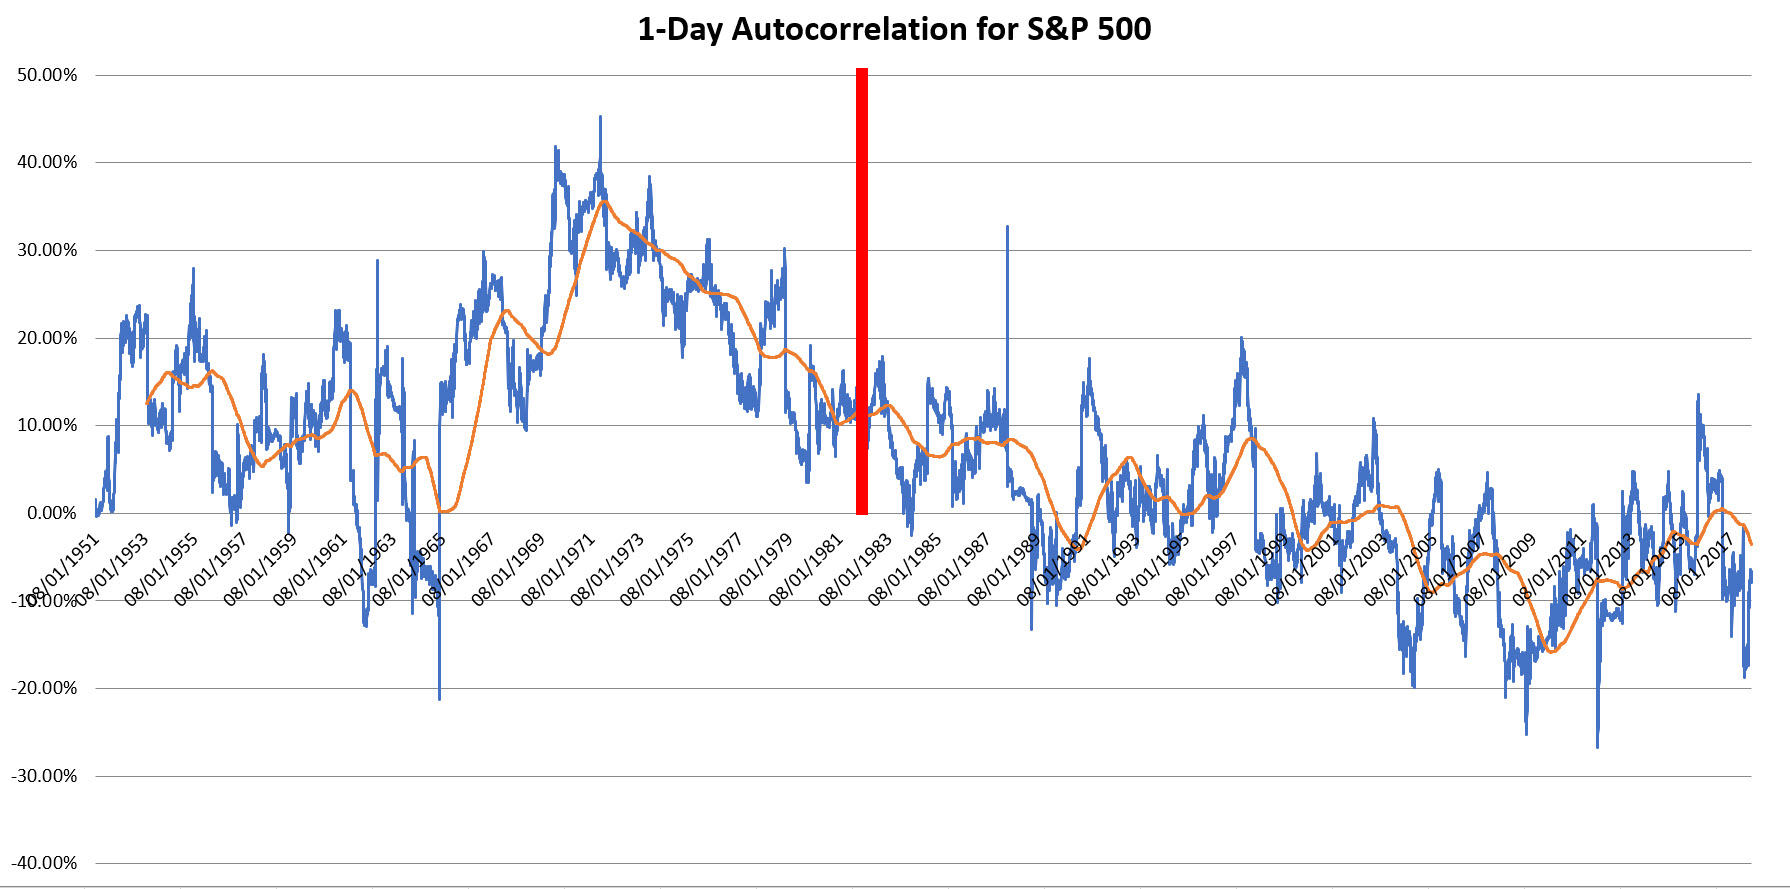 1-Day Autocorrelation for S&P 500